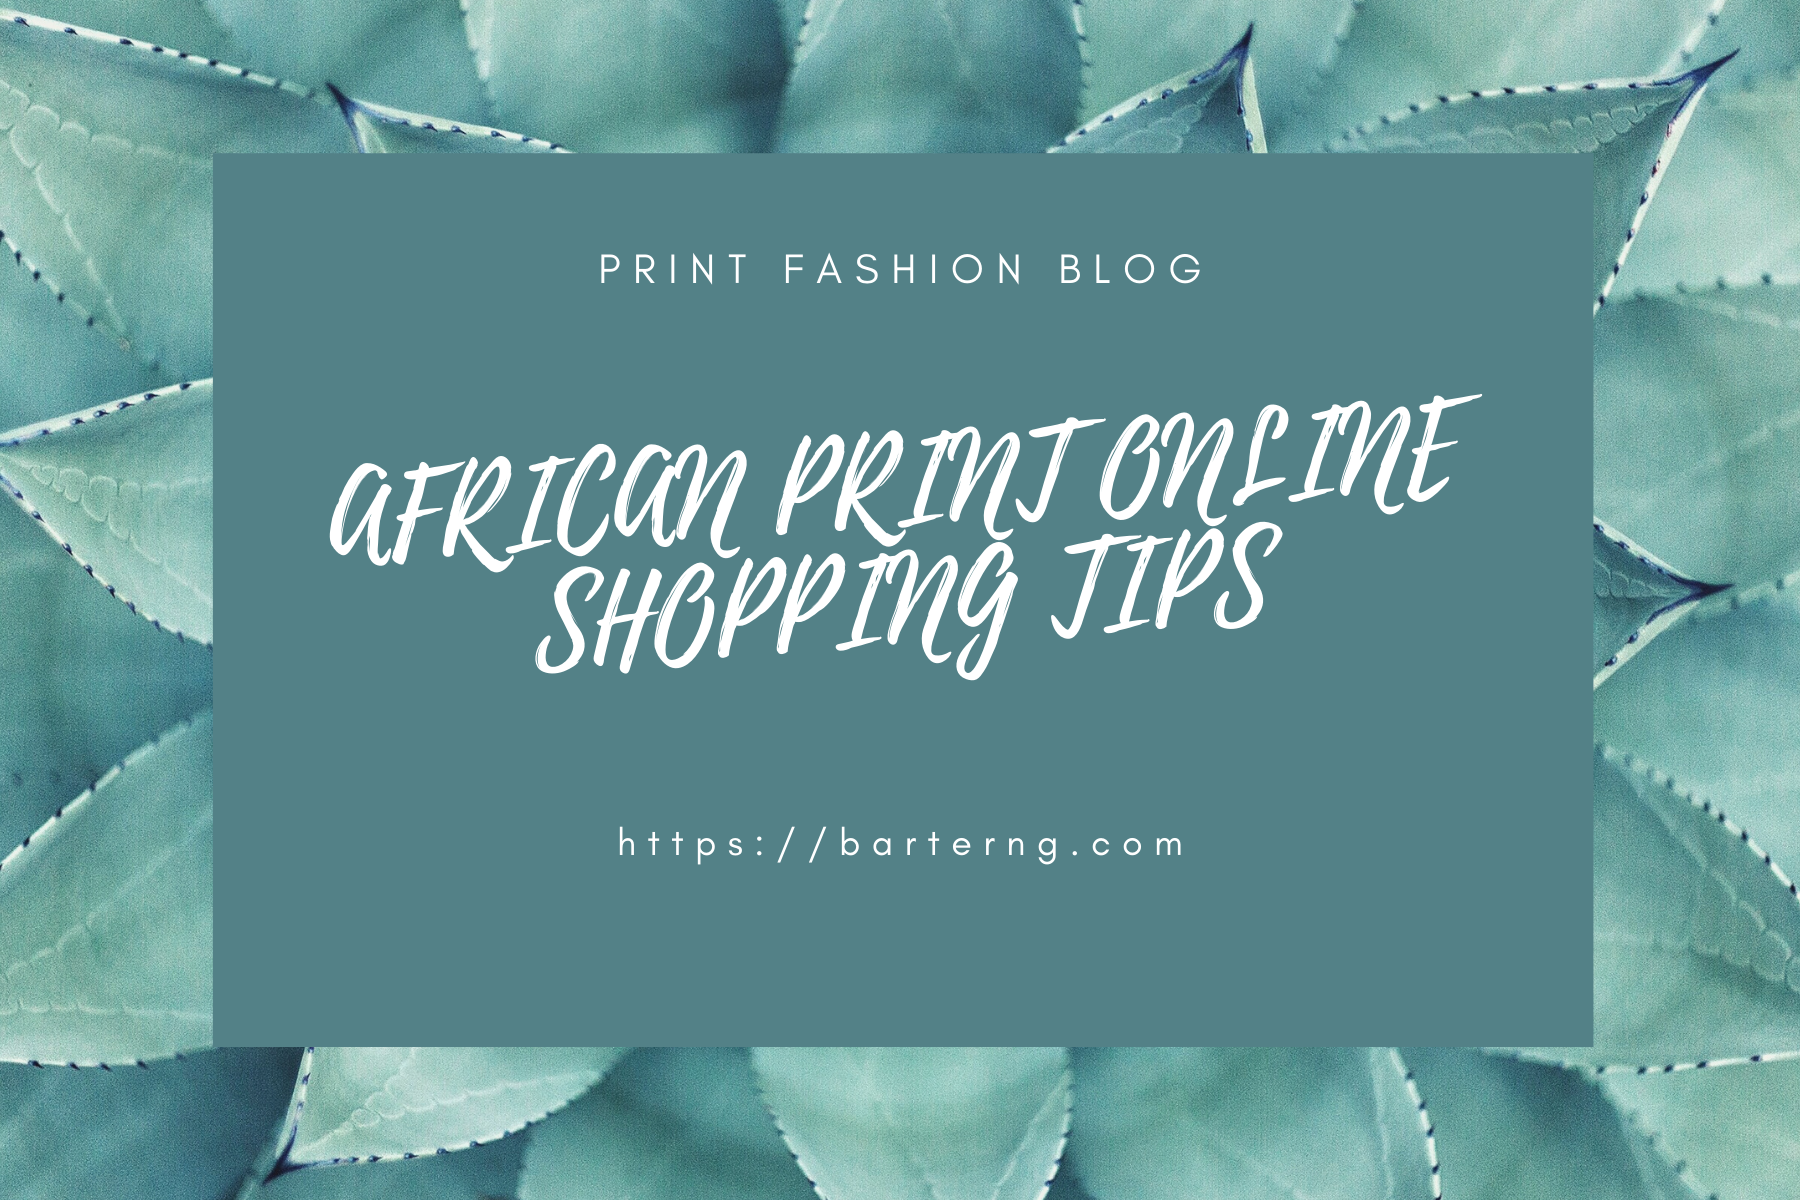 African print shopping tips